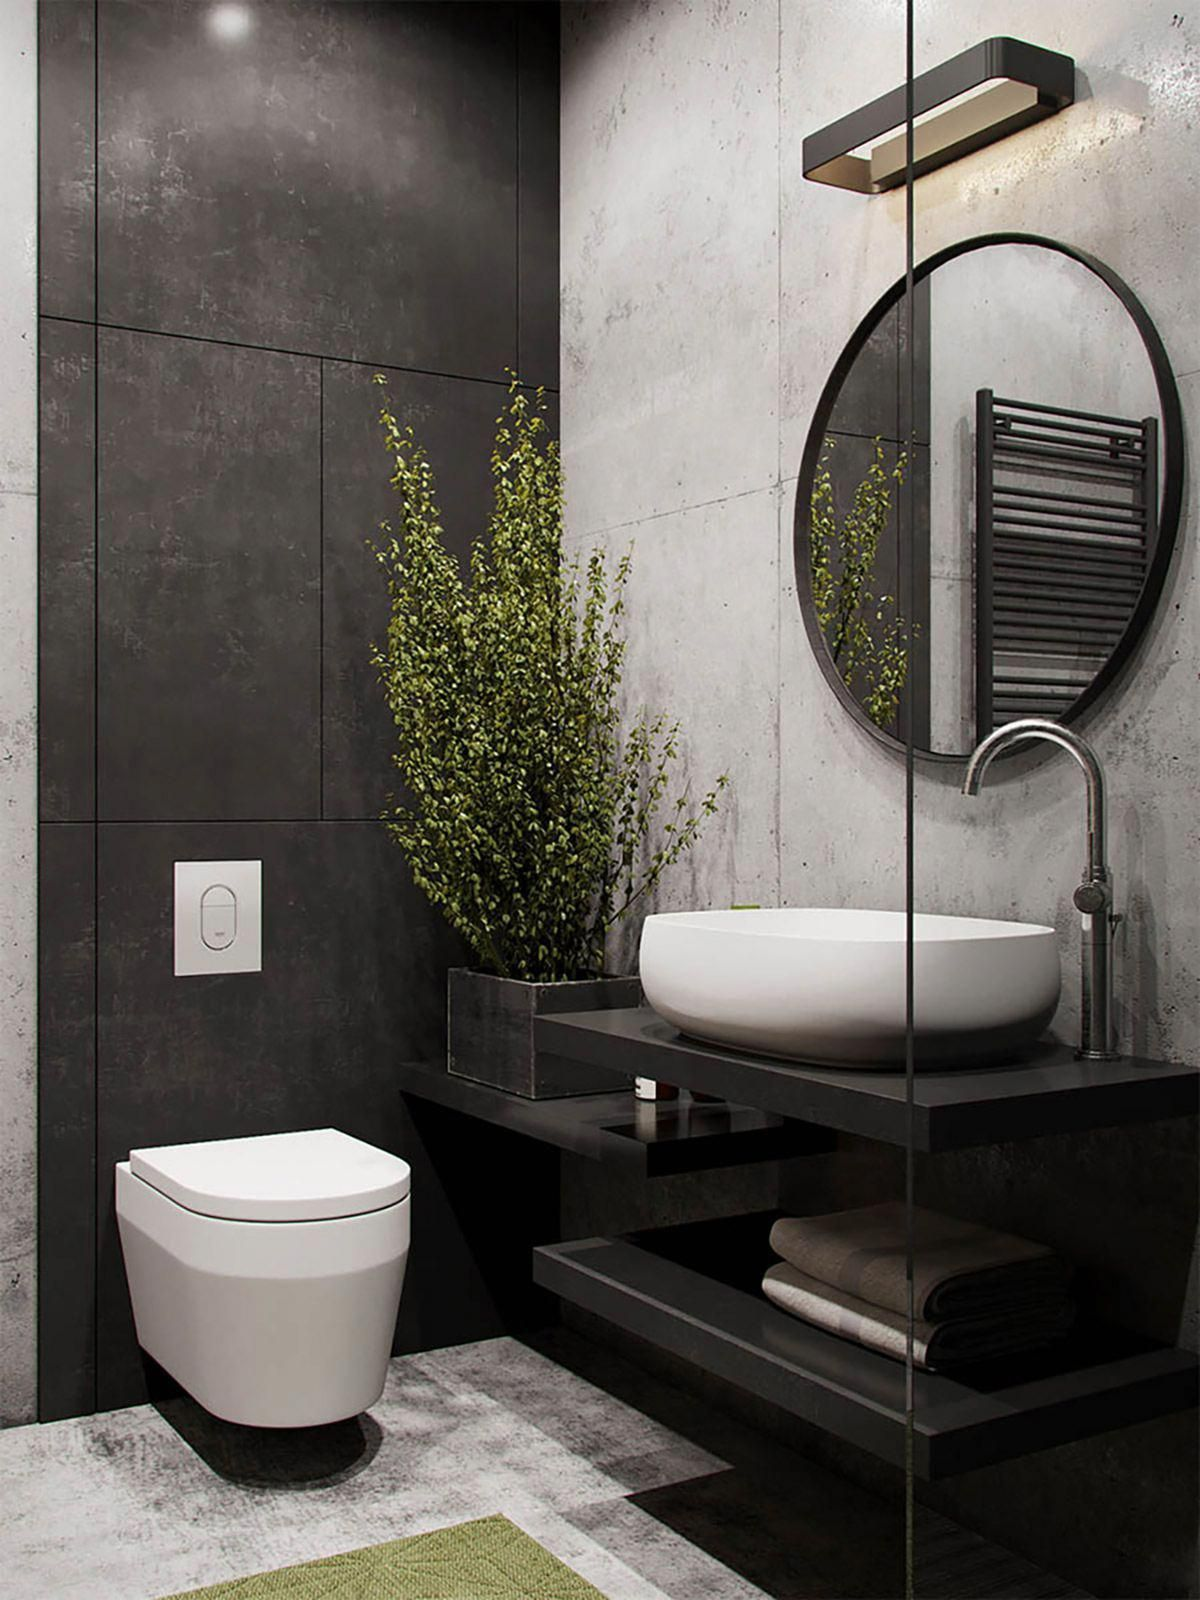 The 10 Items You Can Throw Away Easily Room By Room Saleprice 21 Industrial Bathroom Design Industrial Style Bathroom Bathroom Interior Design